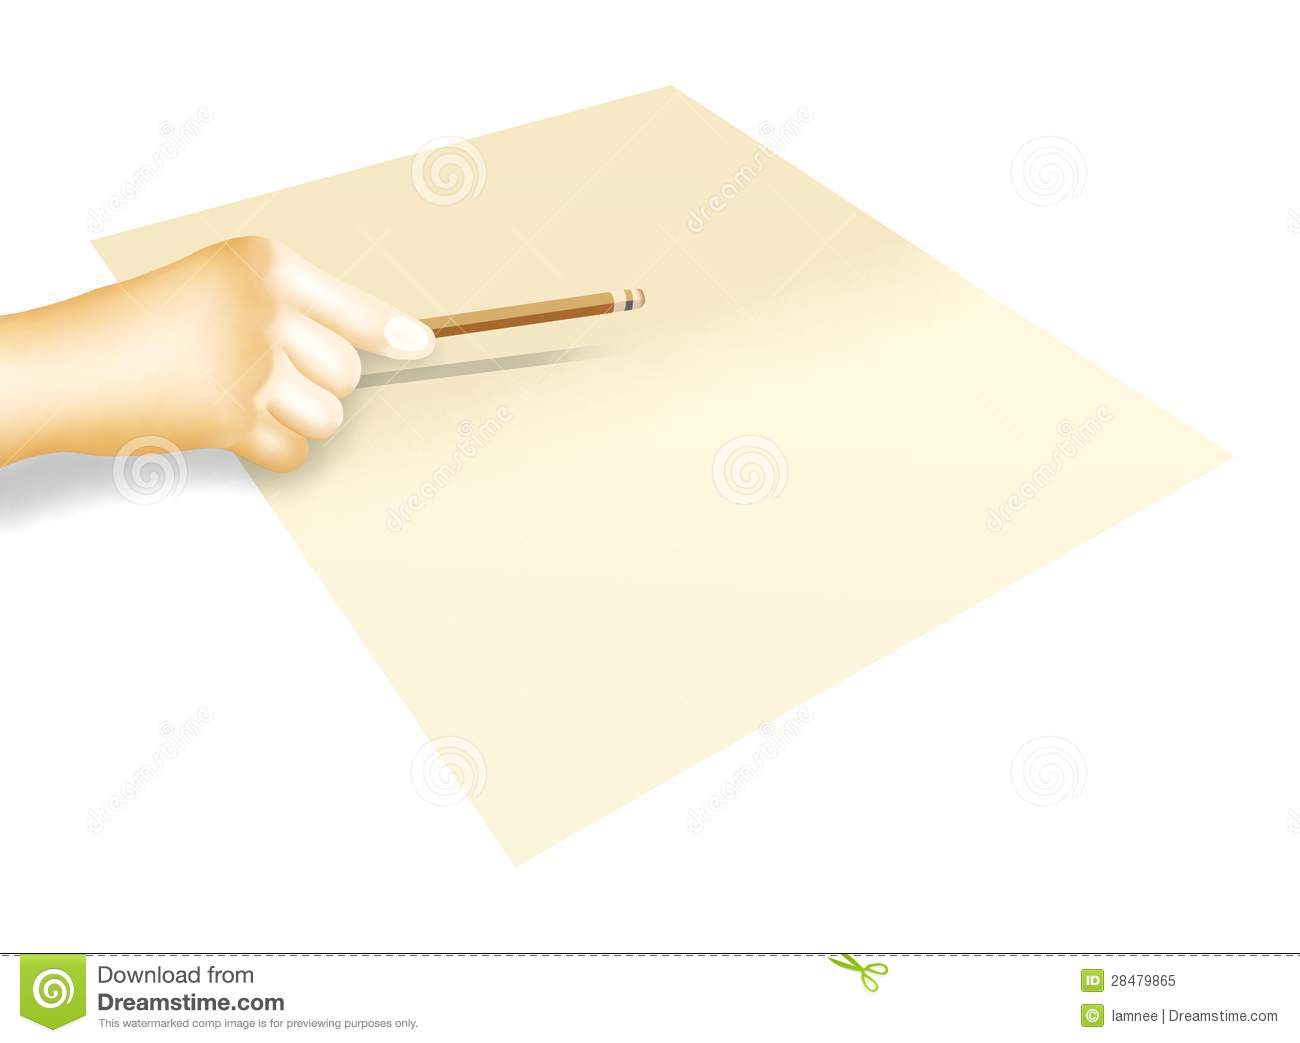 pencil writing on paper  · pen writing on paper sound effect free high quality sound fx - duration: 0:29 free high quality sound fx 5,867 views.